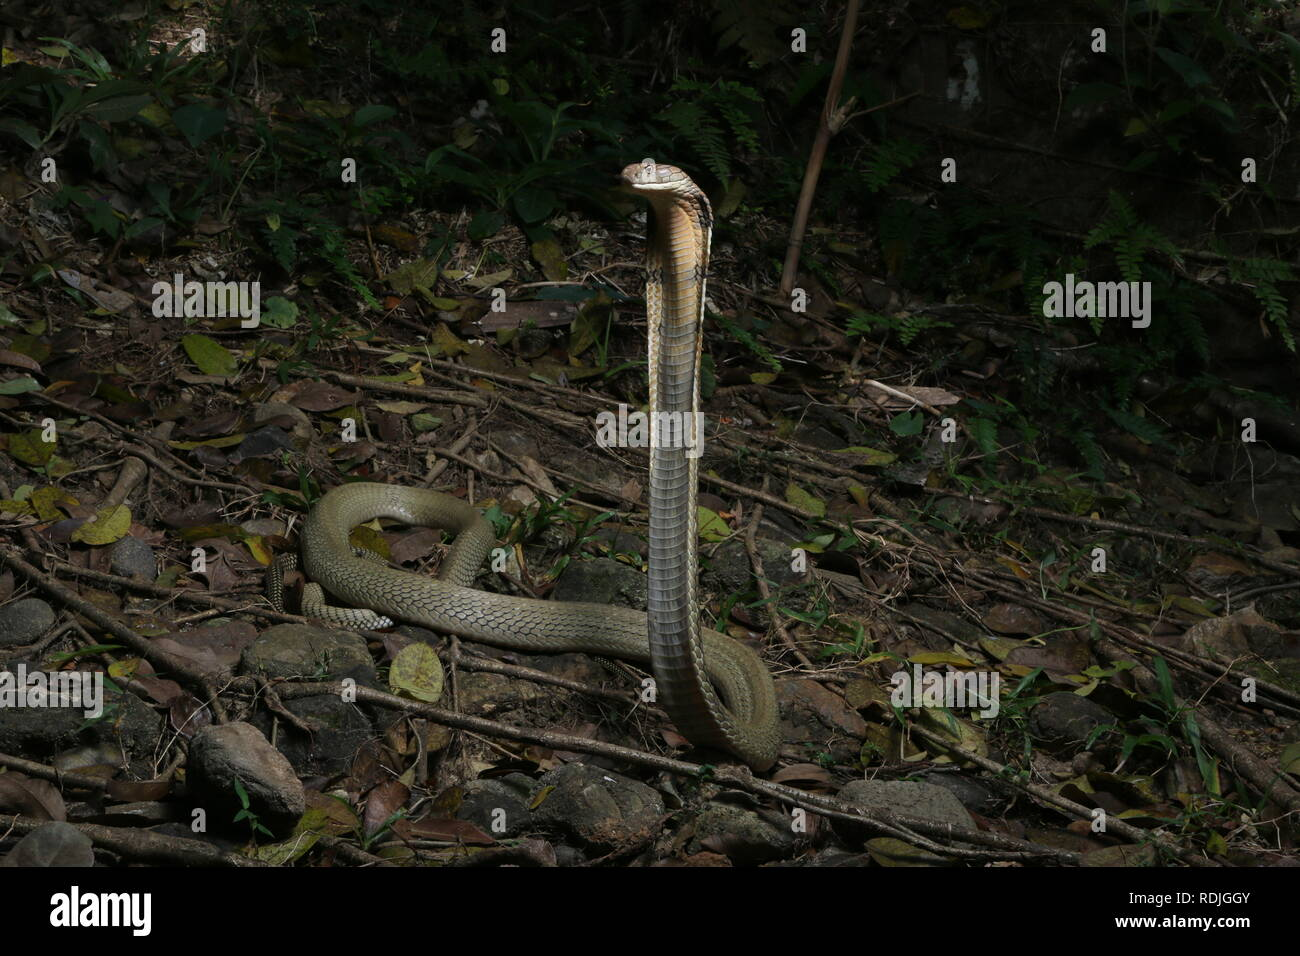 King cobra (Ophiophagus hannah), is a venomous snake species in the family Elapidae, endemic to forests from India  through Southeast Asia - Stock Image